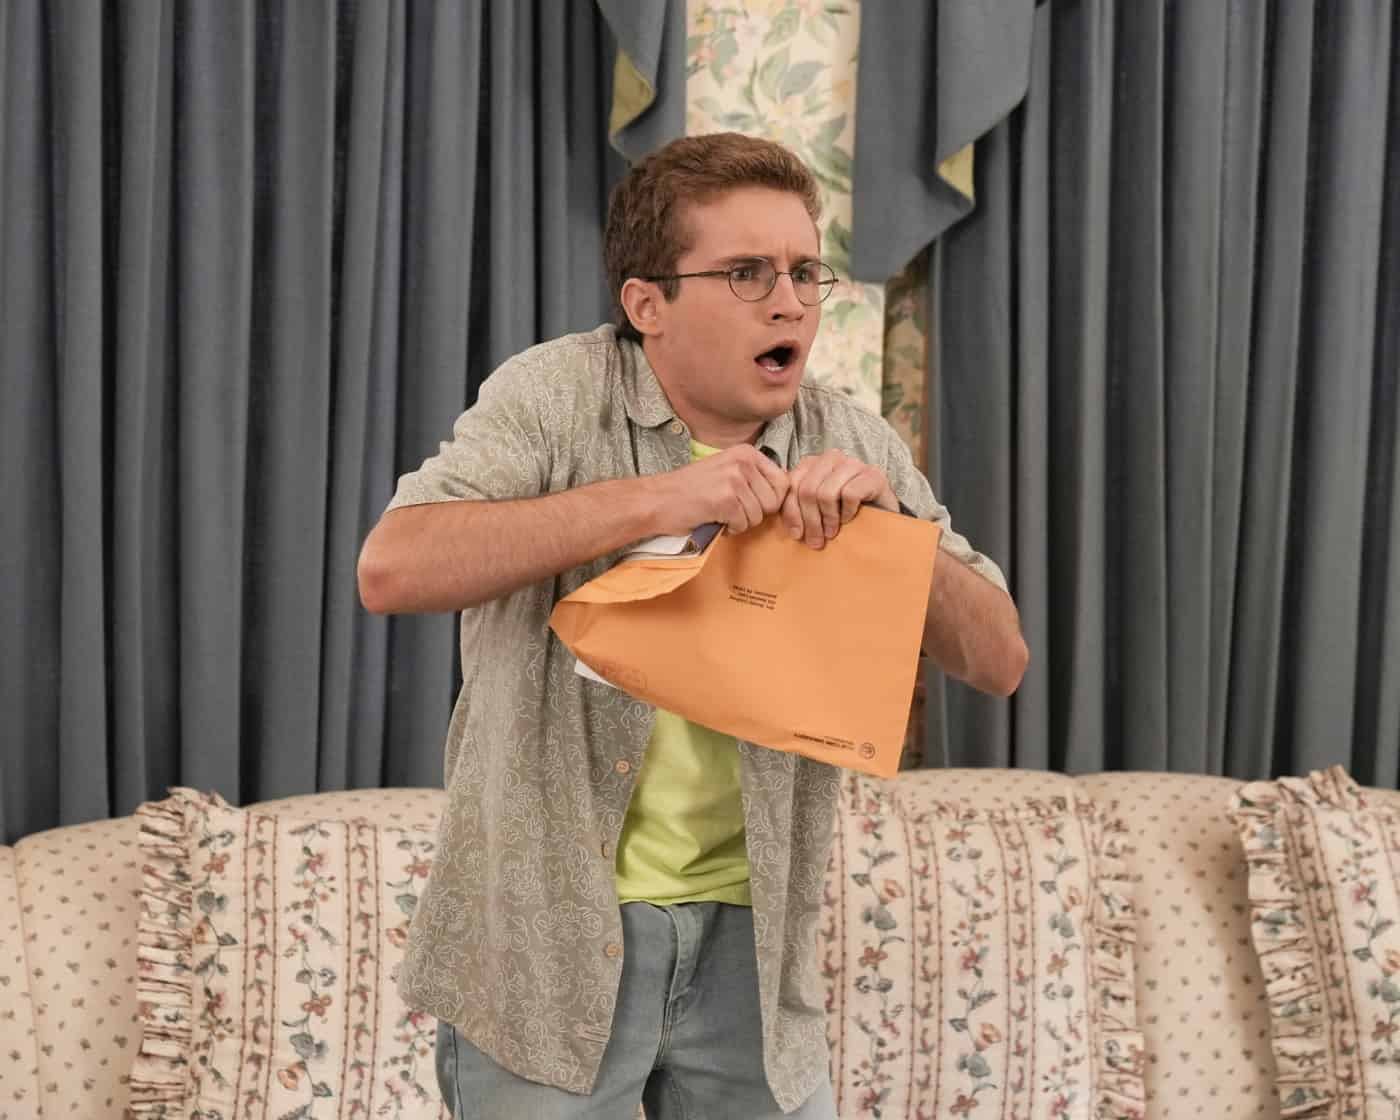 """THE GOLDBERGS Season 9 Episode 2 - """"Horse Play"""" – Adam is ready to leave the struggles of his high school years behind him but is distraught to discover he's been waitlisted at NYU while his girlfriend Brea has been accepted, along with his mom Beverly – who surprises everyone by admitting she applied to the same school. Adam courts the NYU dean of admissions, hoping she will change her mind on his deferral. Meanwhile, Erica, Geoff, Barry and Joanne create their own plan to convince Geoff's dad, Lou, that Erica had nothing to do with a past incident involving his prized porcelain horses on a new episode of """"The Goldbergs,"""" airing WEDNESDAY, SEPT. 29 (8:00-8:30 p.m. EDT), on ABC. (ABC/Scott Everett White) SEAN GIAMBRONE"""